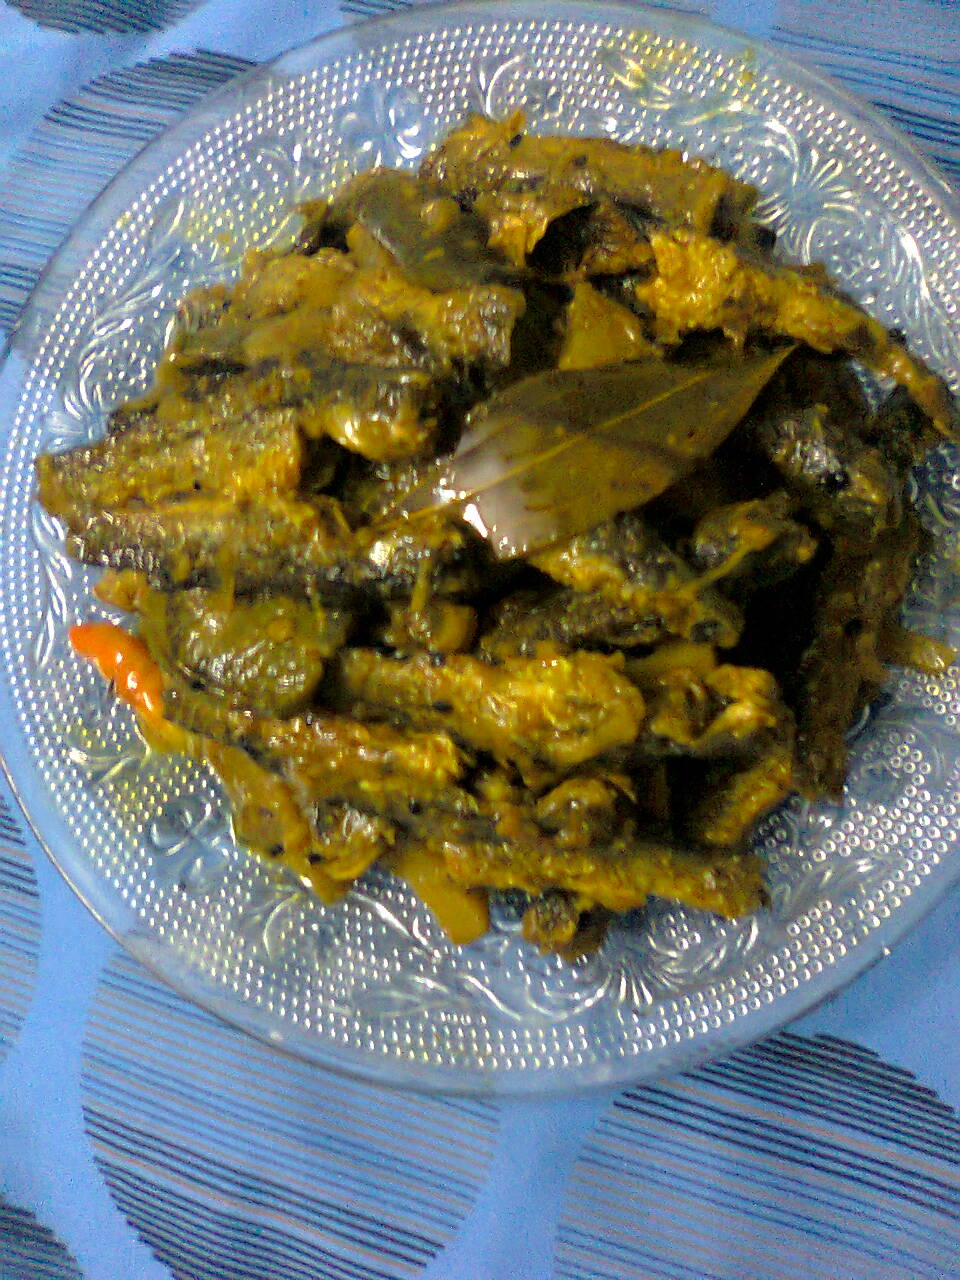 Dry Curry OF Tengra Fish With Vegetables/Tengra Subji – Jhal